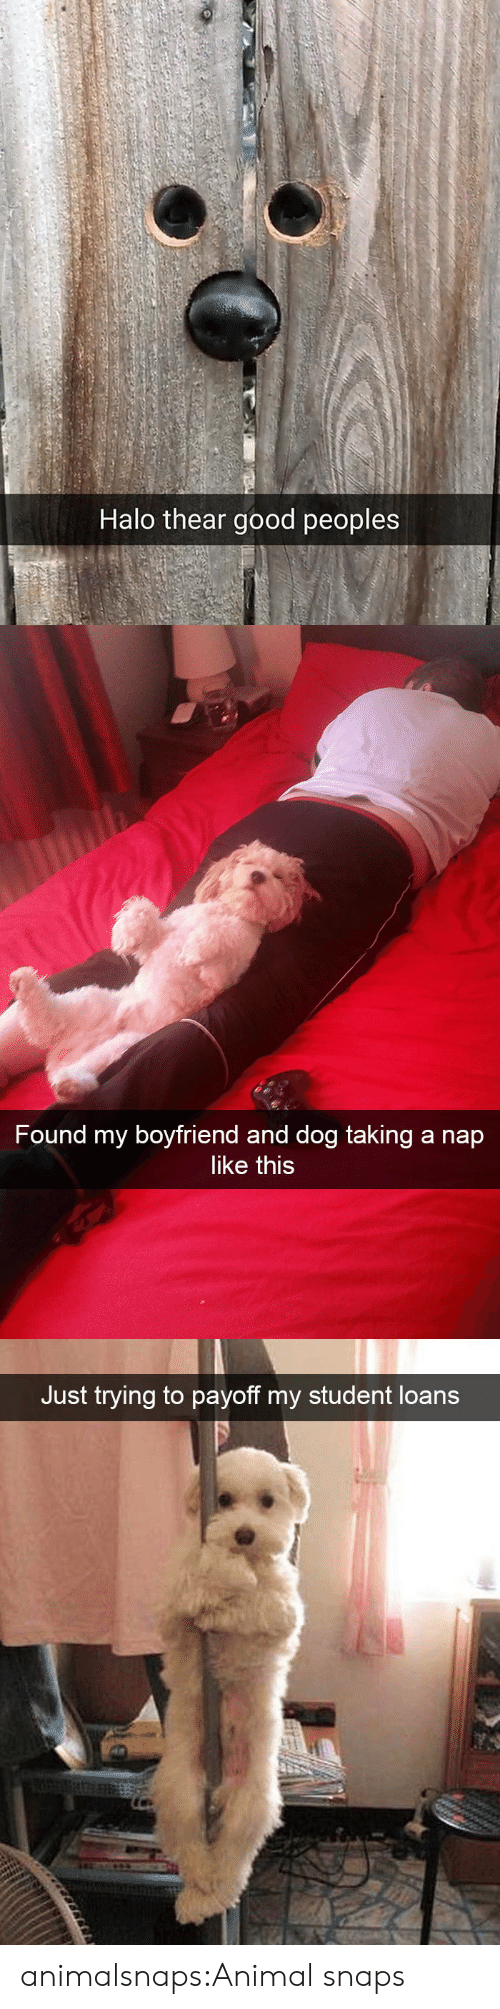 Halo: Halo thear good peoples   Found my boyfriend and dog taking a nap  like this   Just trying to payoff my student loans animalsnaps:Animal snaps